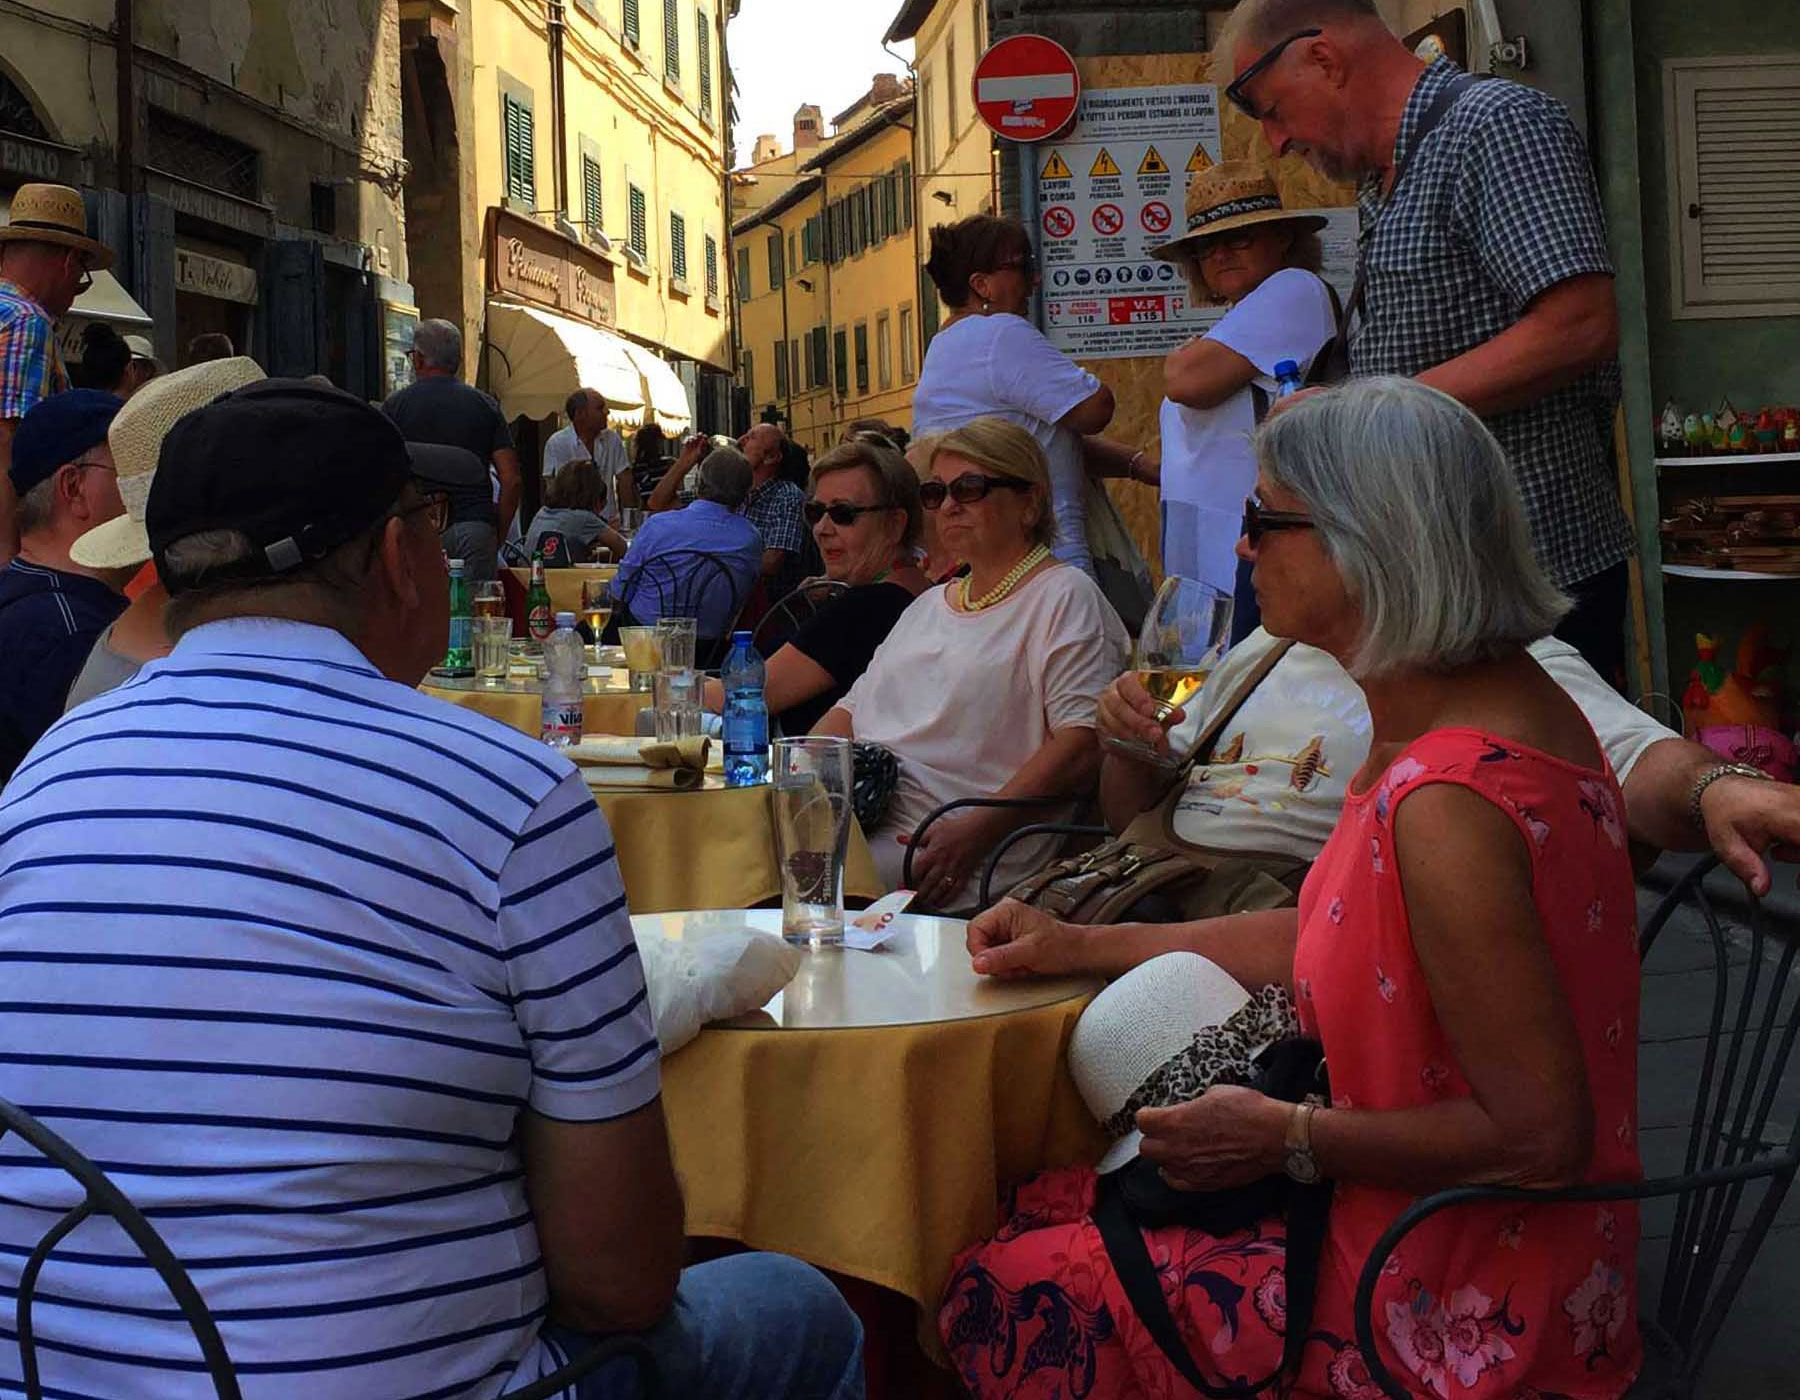 Cortona's popularity with tourists is turning village life into bedlam for the locals.